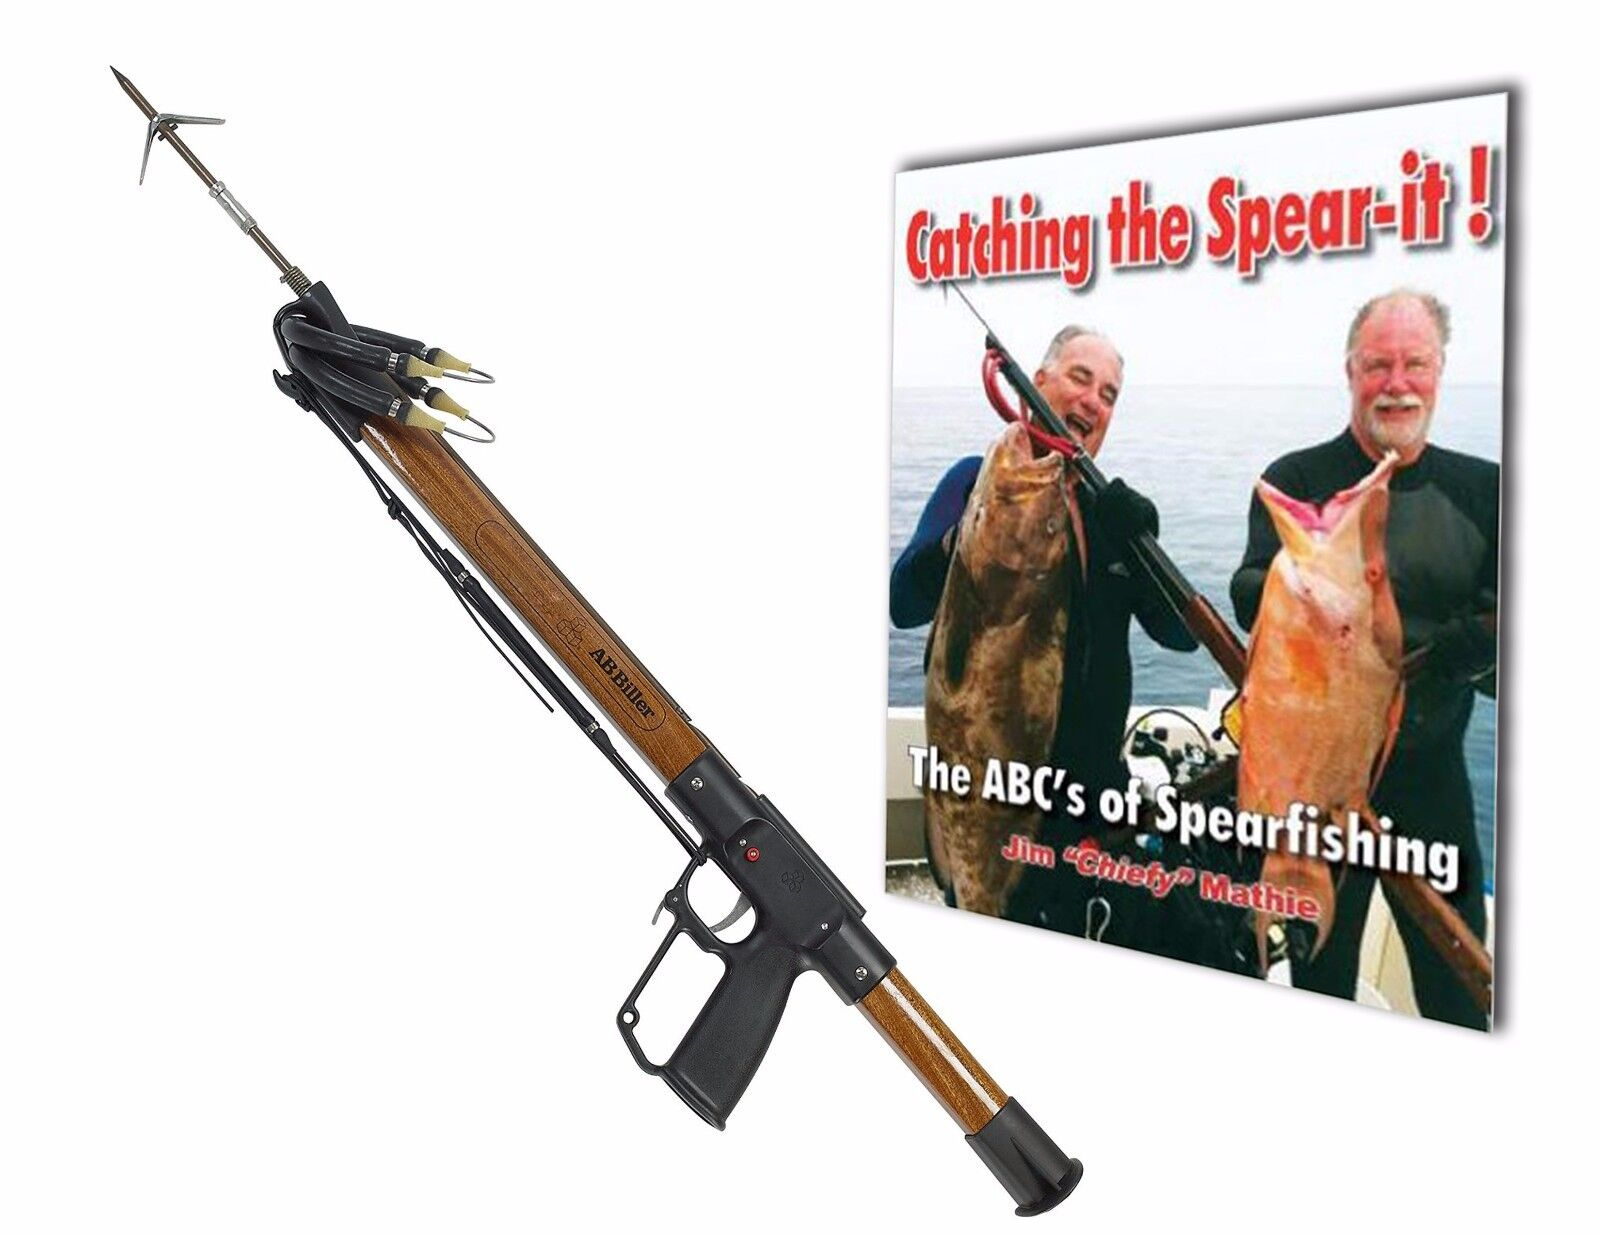 A.B. Biller Mahogany 48 Special Speargun with The ABC's of Spearfishing BOOK.